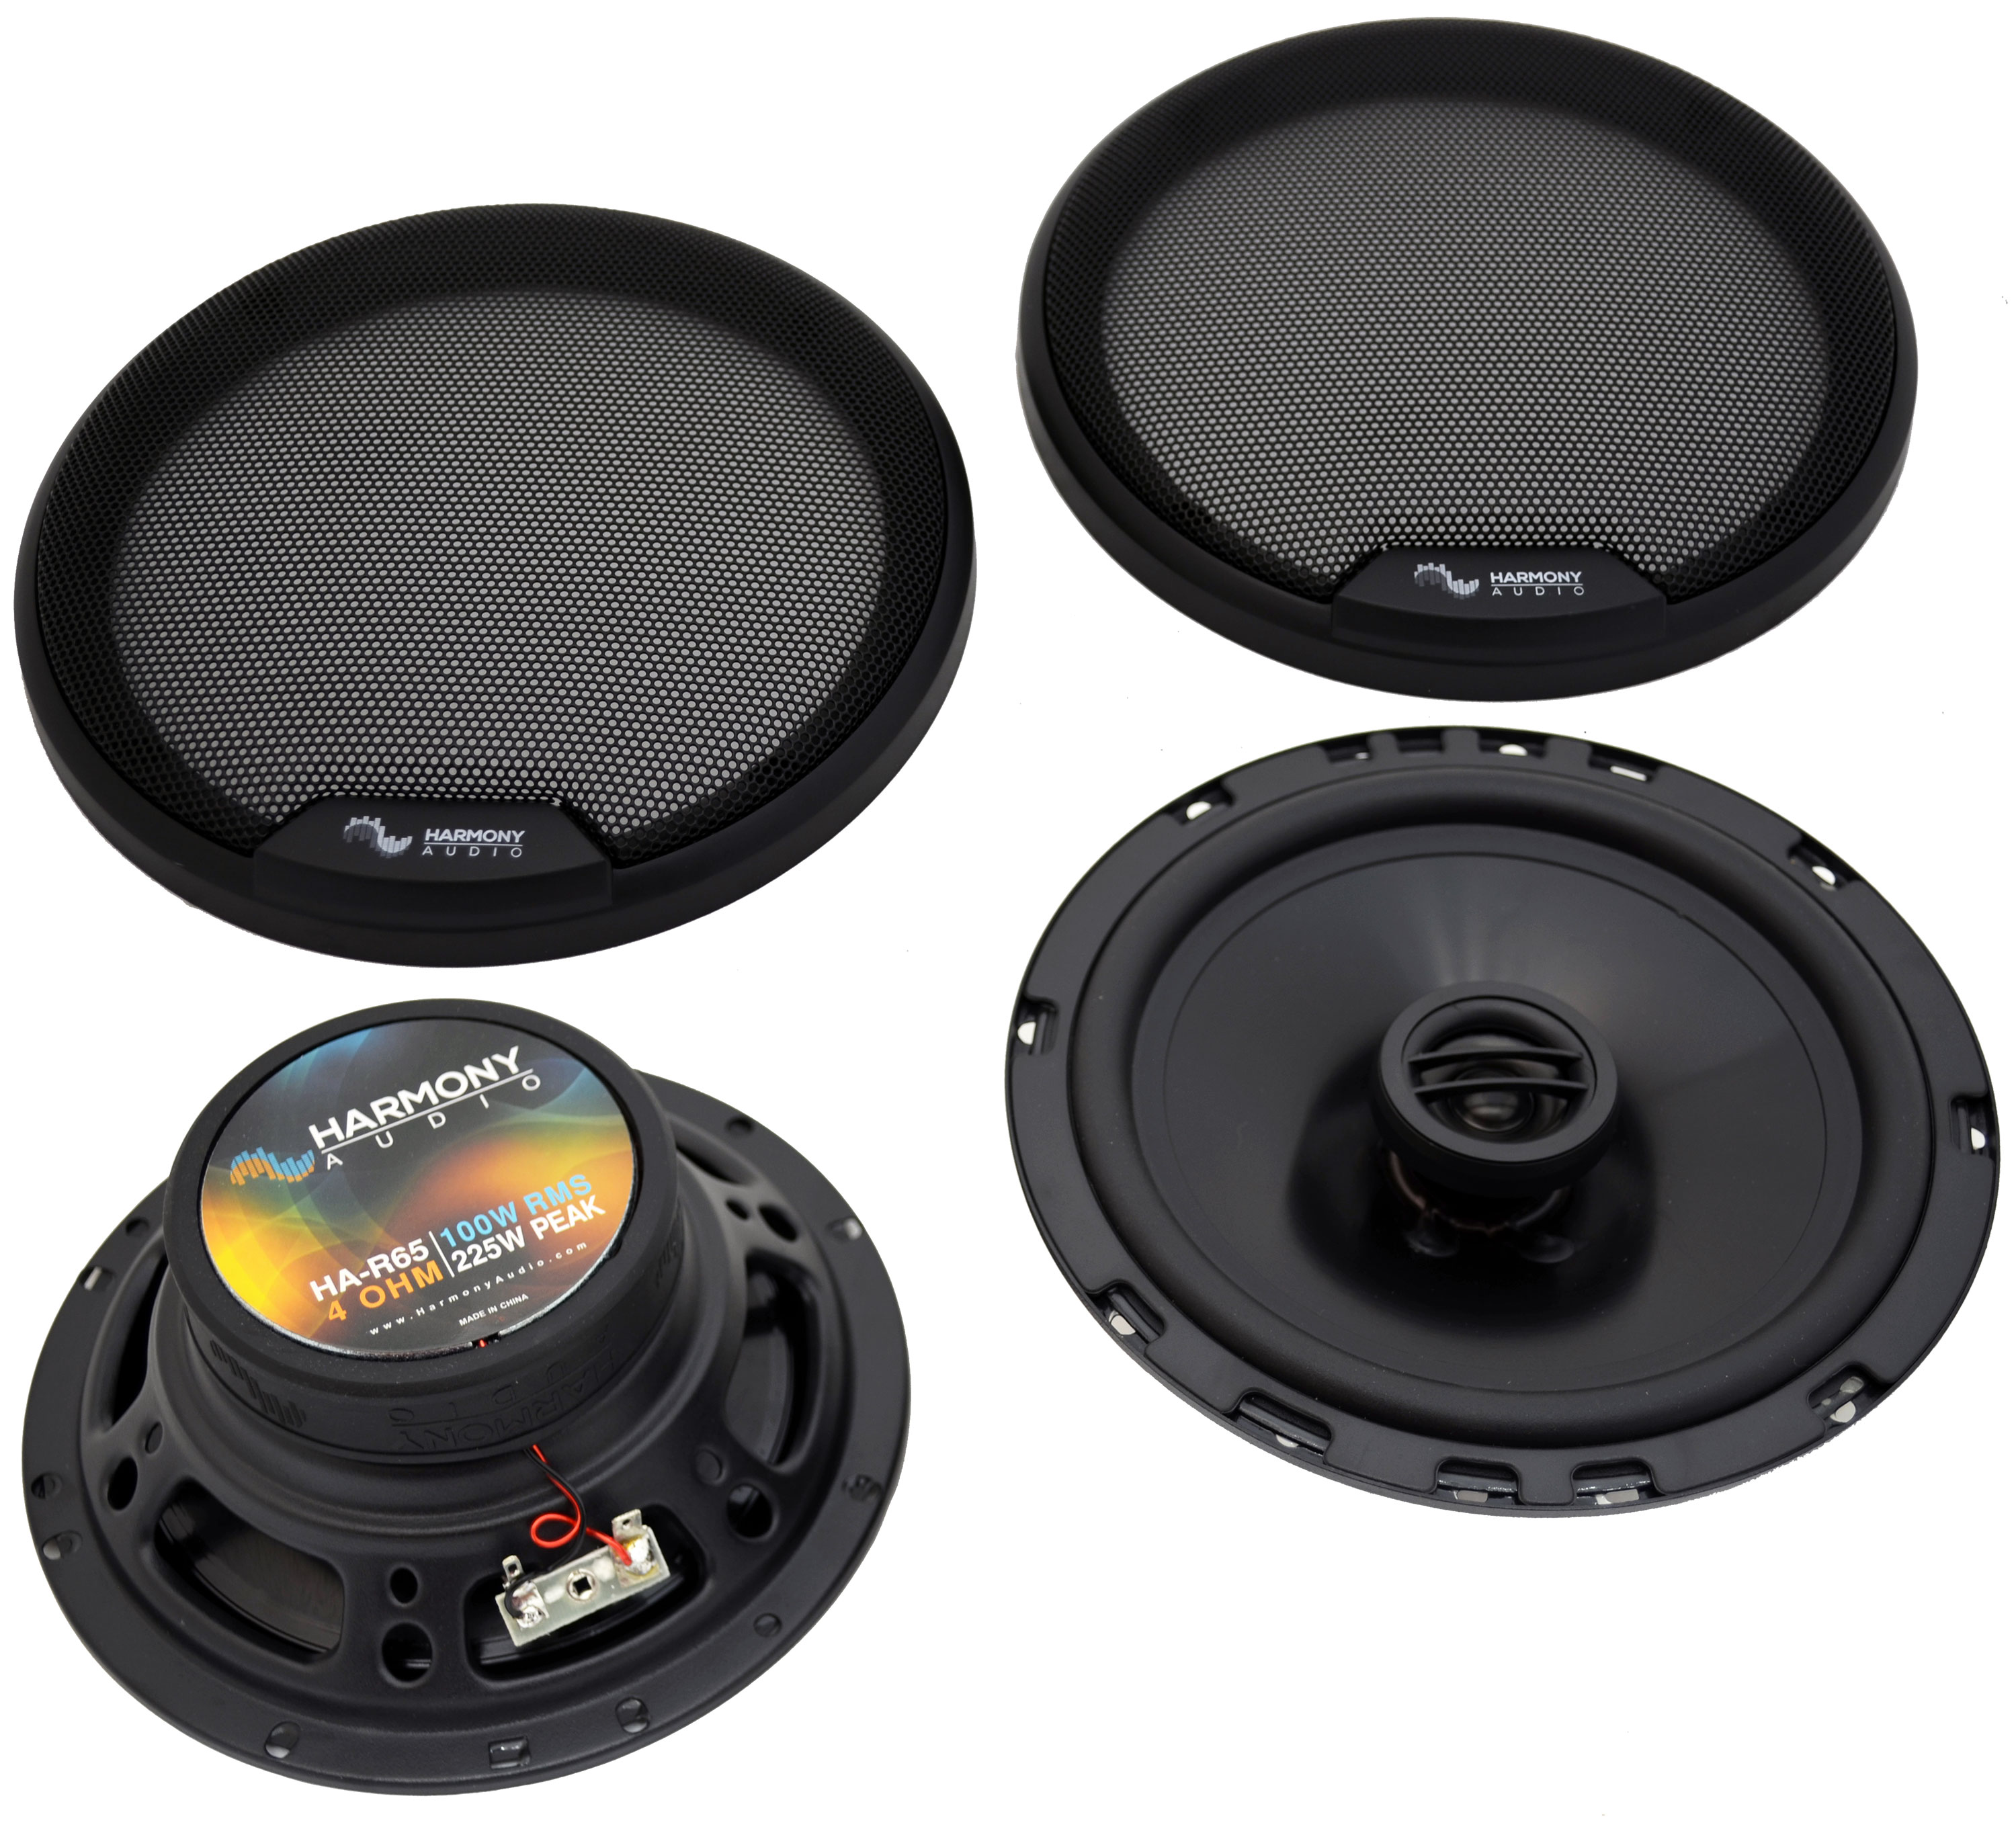 Fits Dodge Colt 1985-1986 Rear Deck Replacement Speaker Harmony HA-R65 Speakers